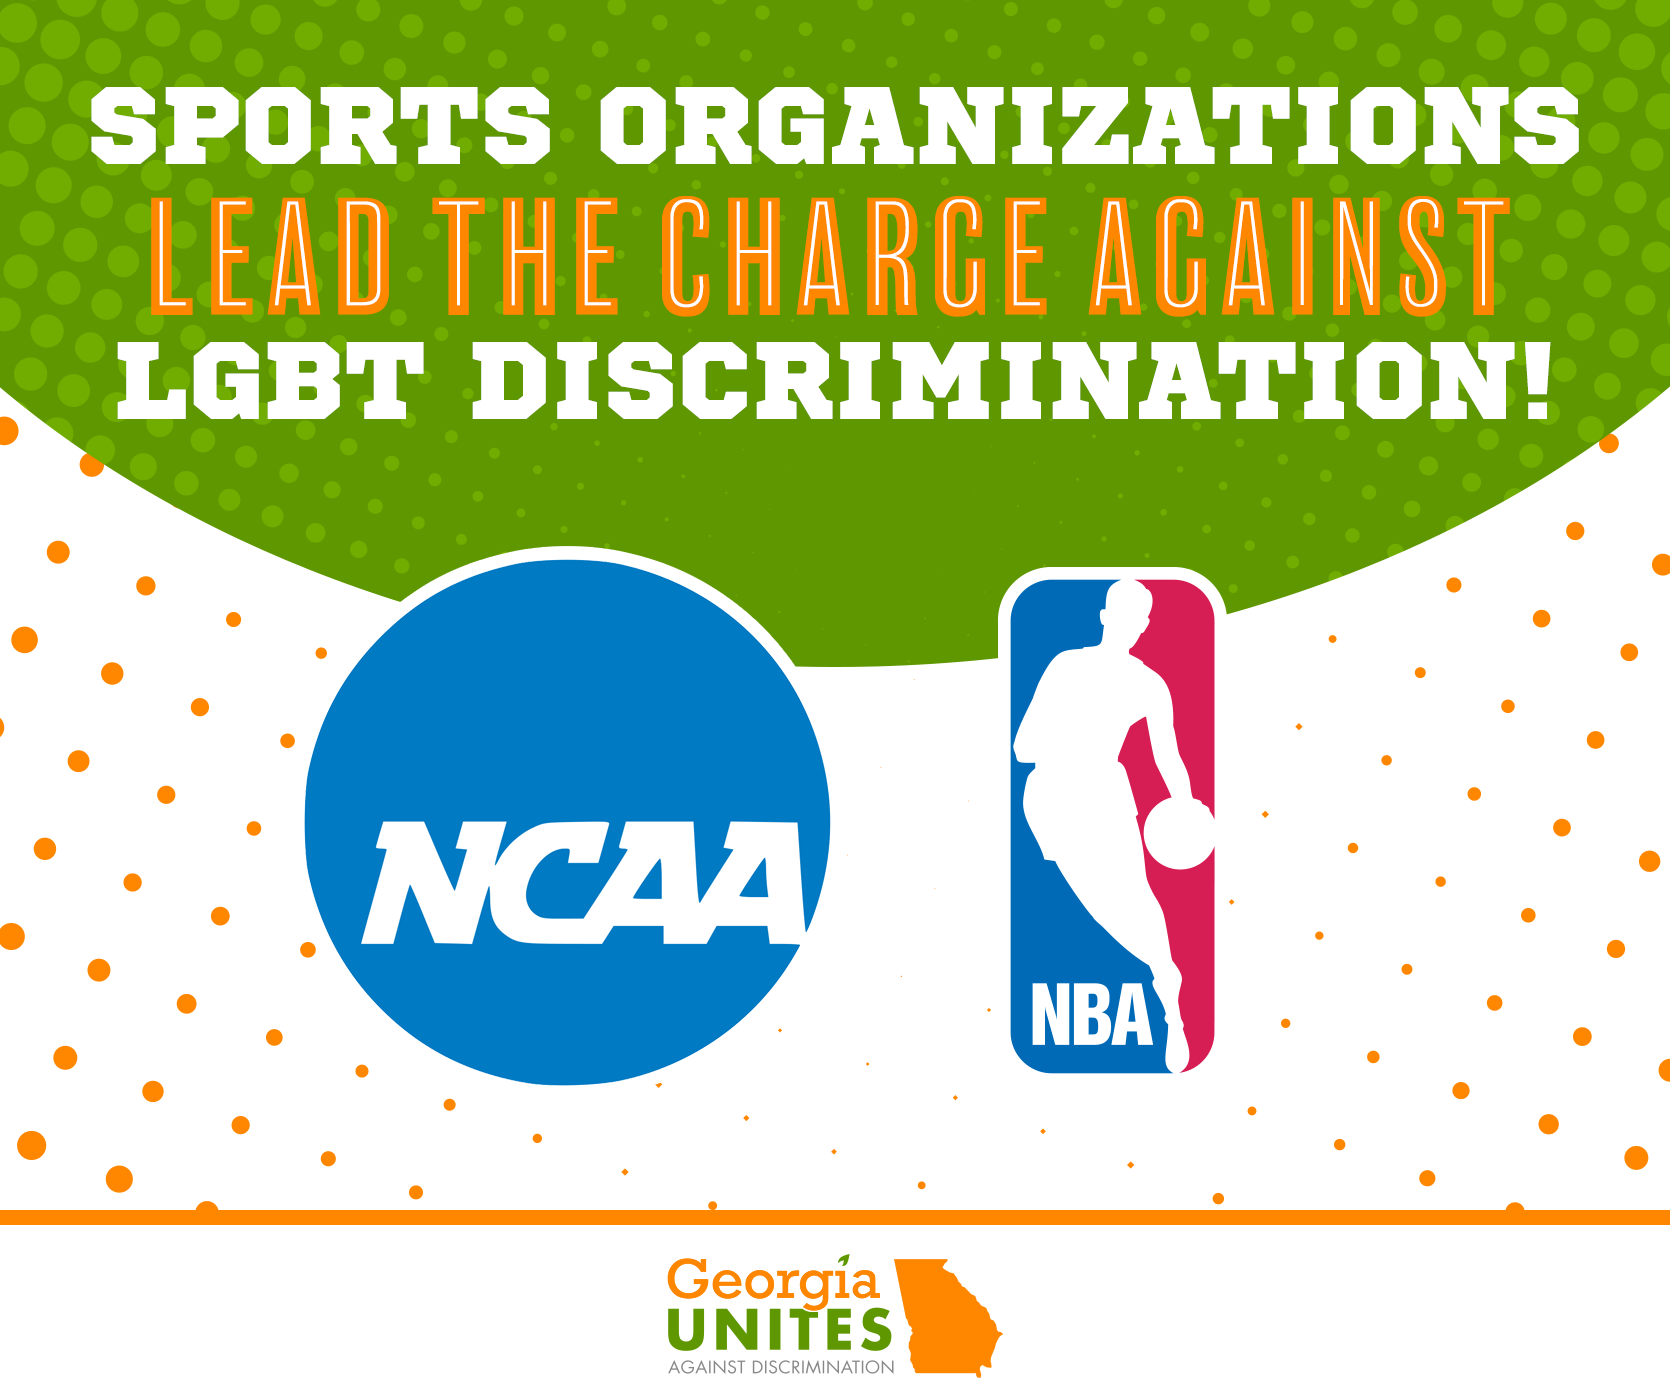 Sports Organizations Lead the Charge to Uproot LGBT Discrimination in the States